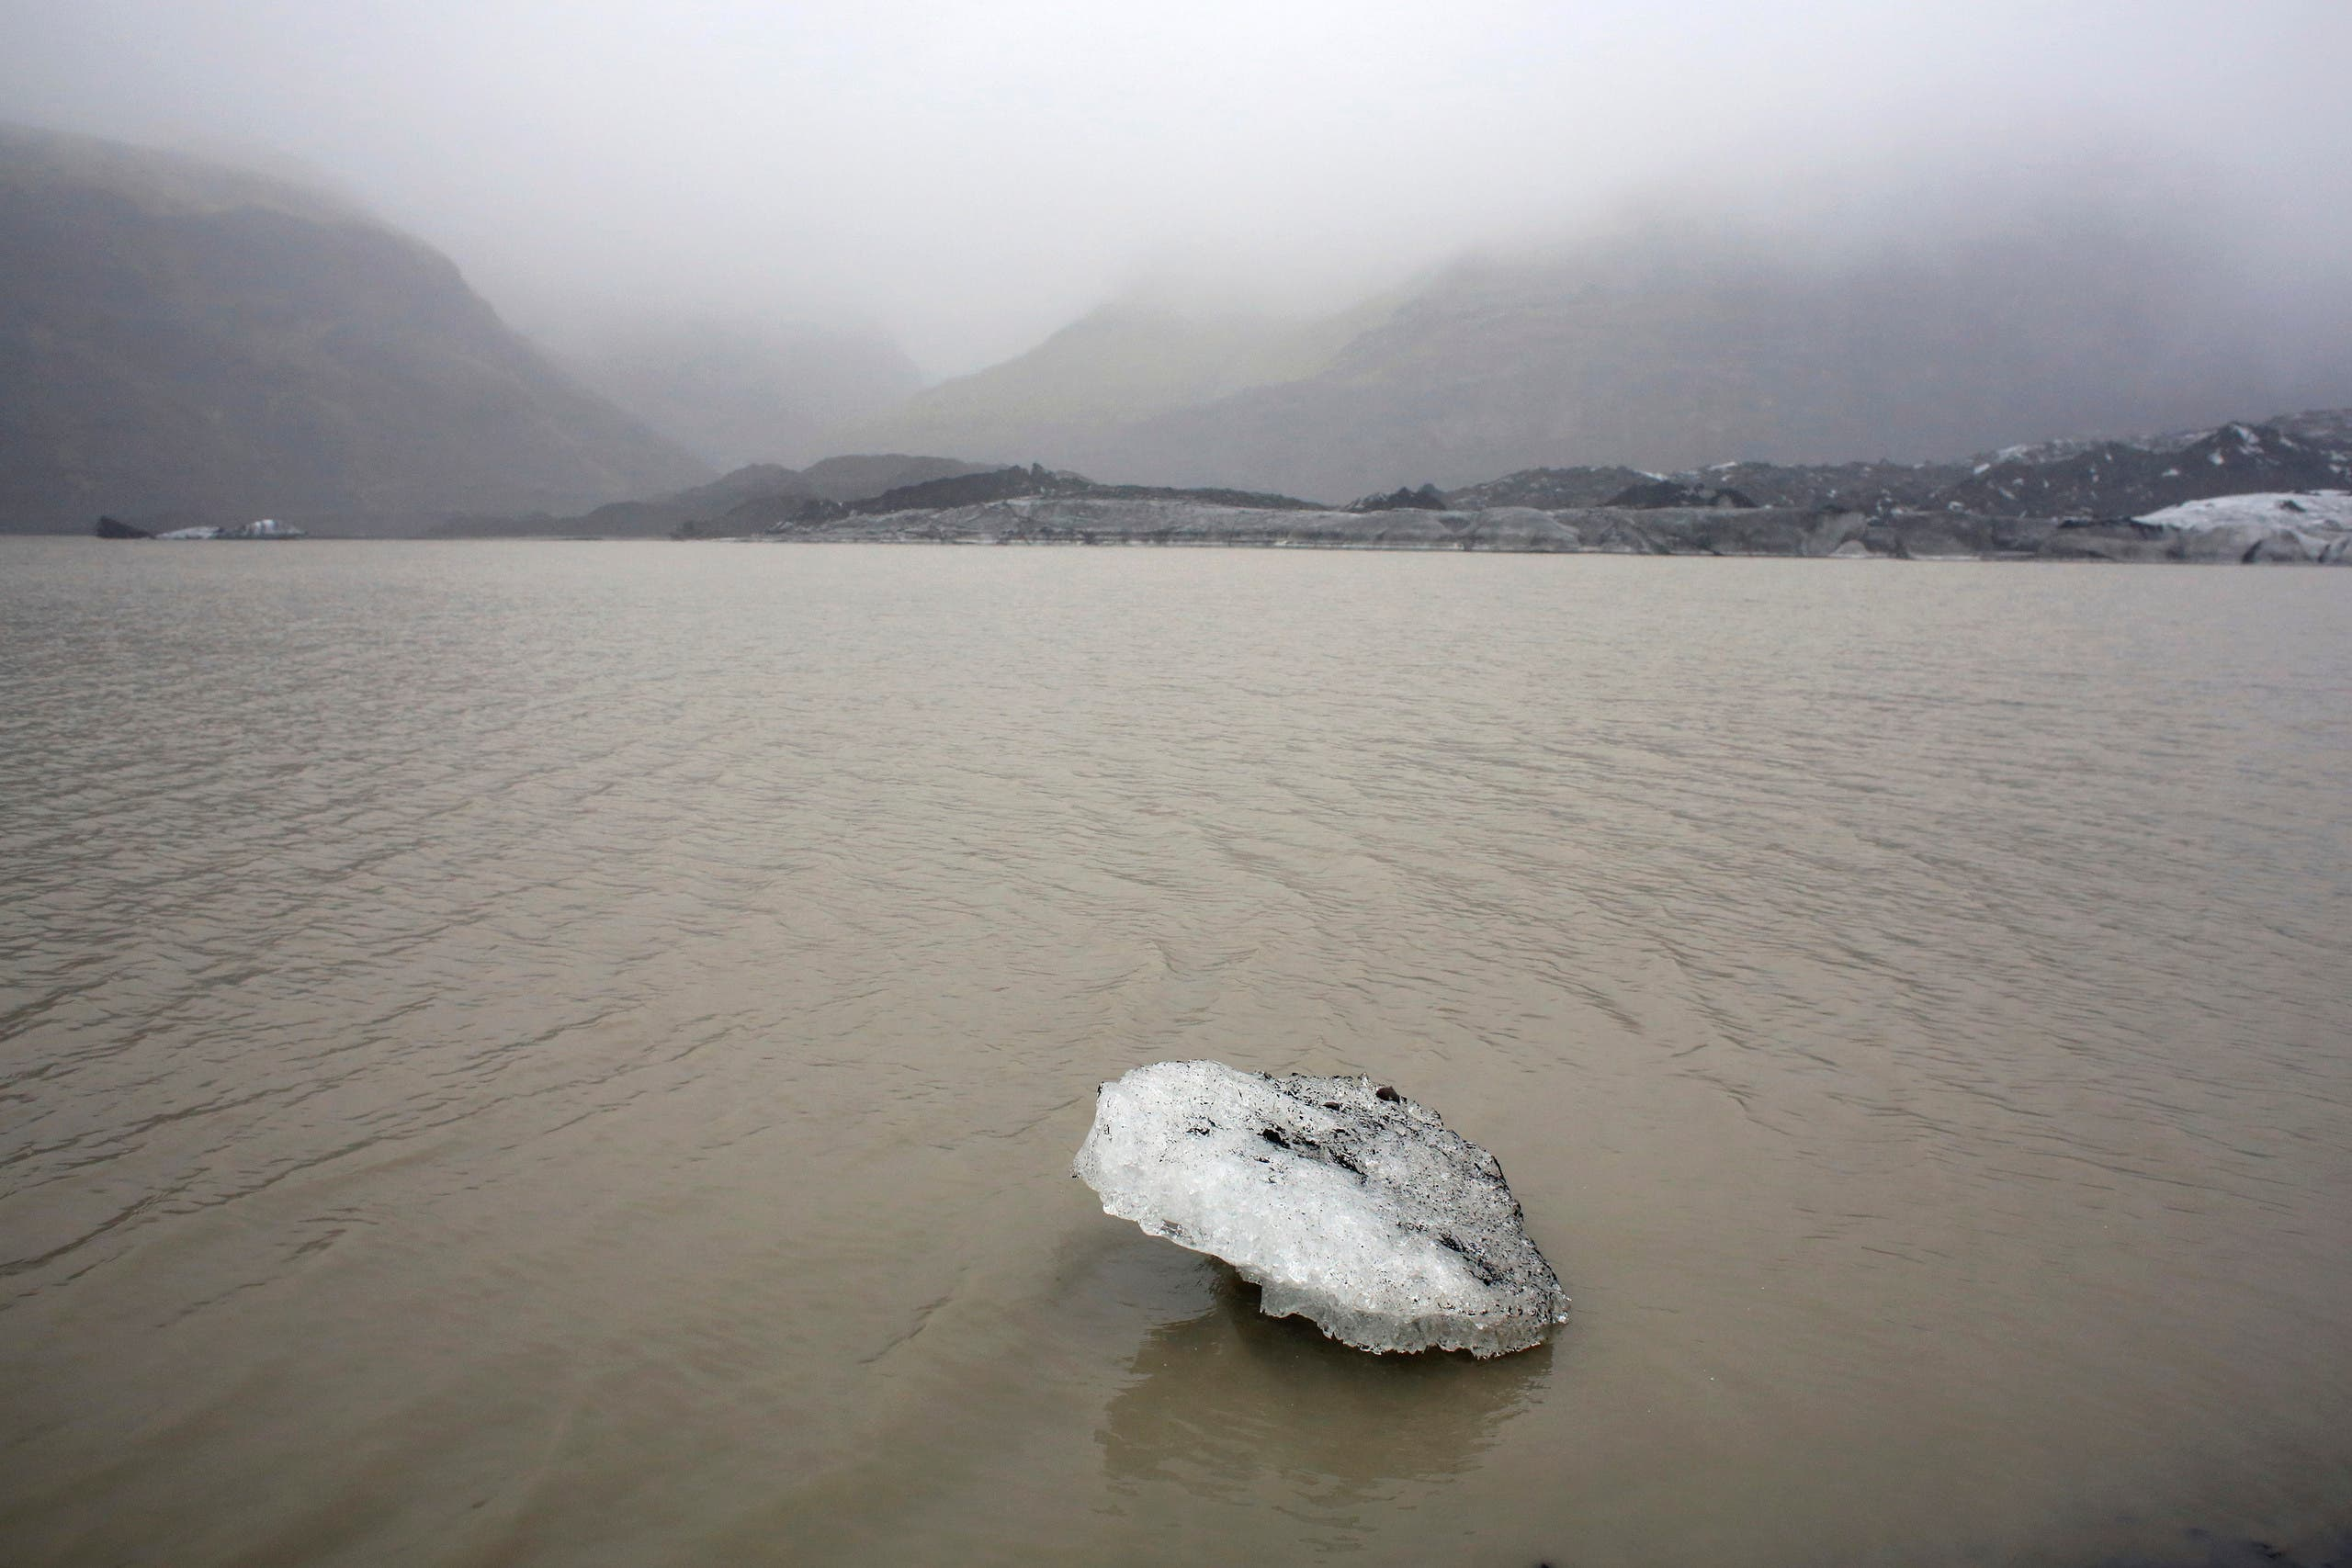 A view shows an ice flow floating on a lake in front of the Solheimajokull Glacier, where the ice has receded by more than 1 kilometer (0.6 miles) since annual measurements began in 1931, Iceland October 16, 2015. (File photo: Reuters)